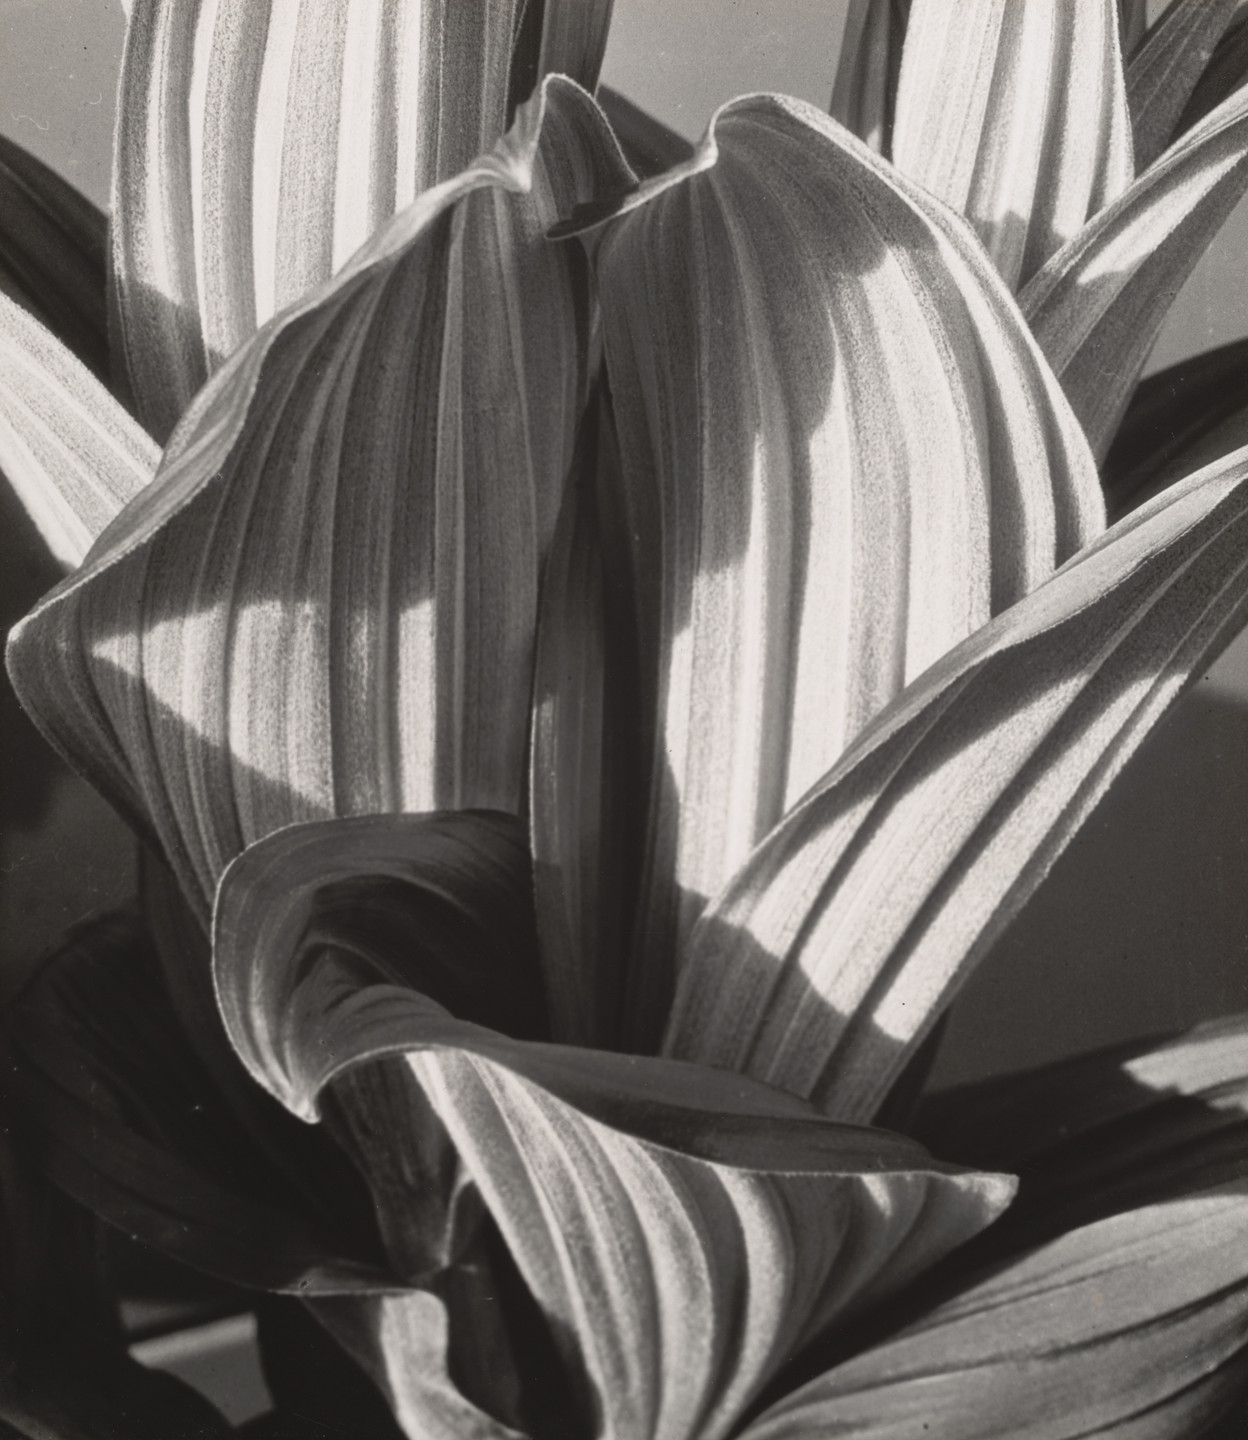 Imogen Cunningham. Glacial Lily. 1927